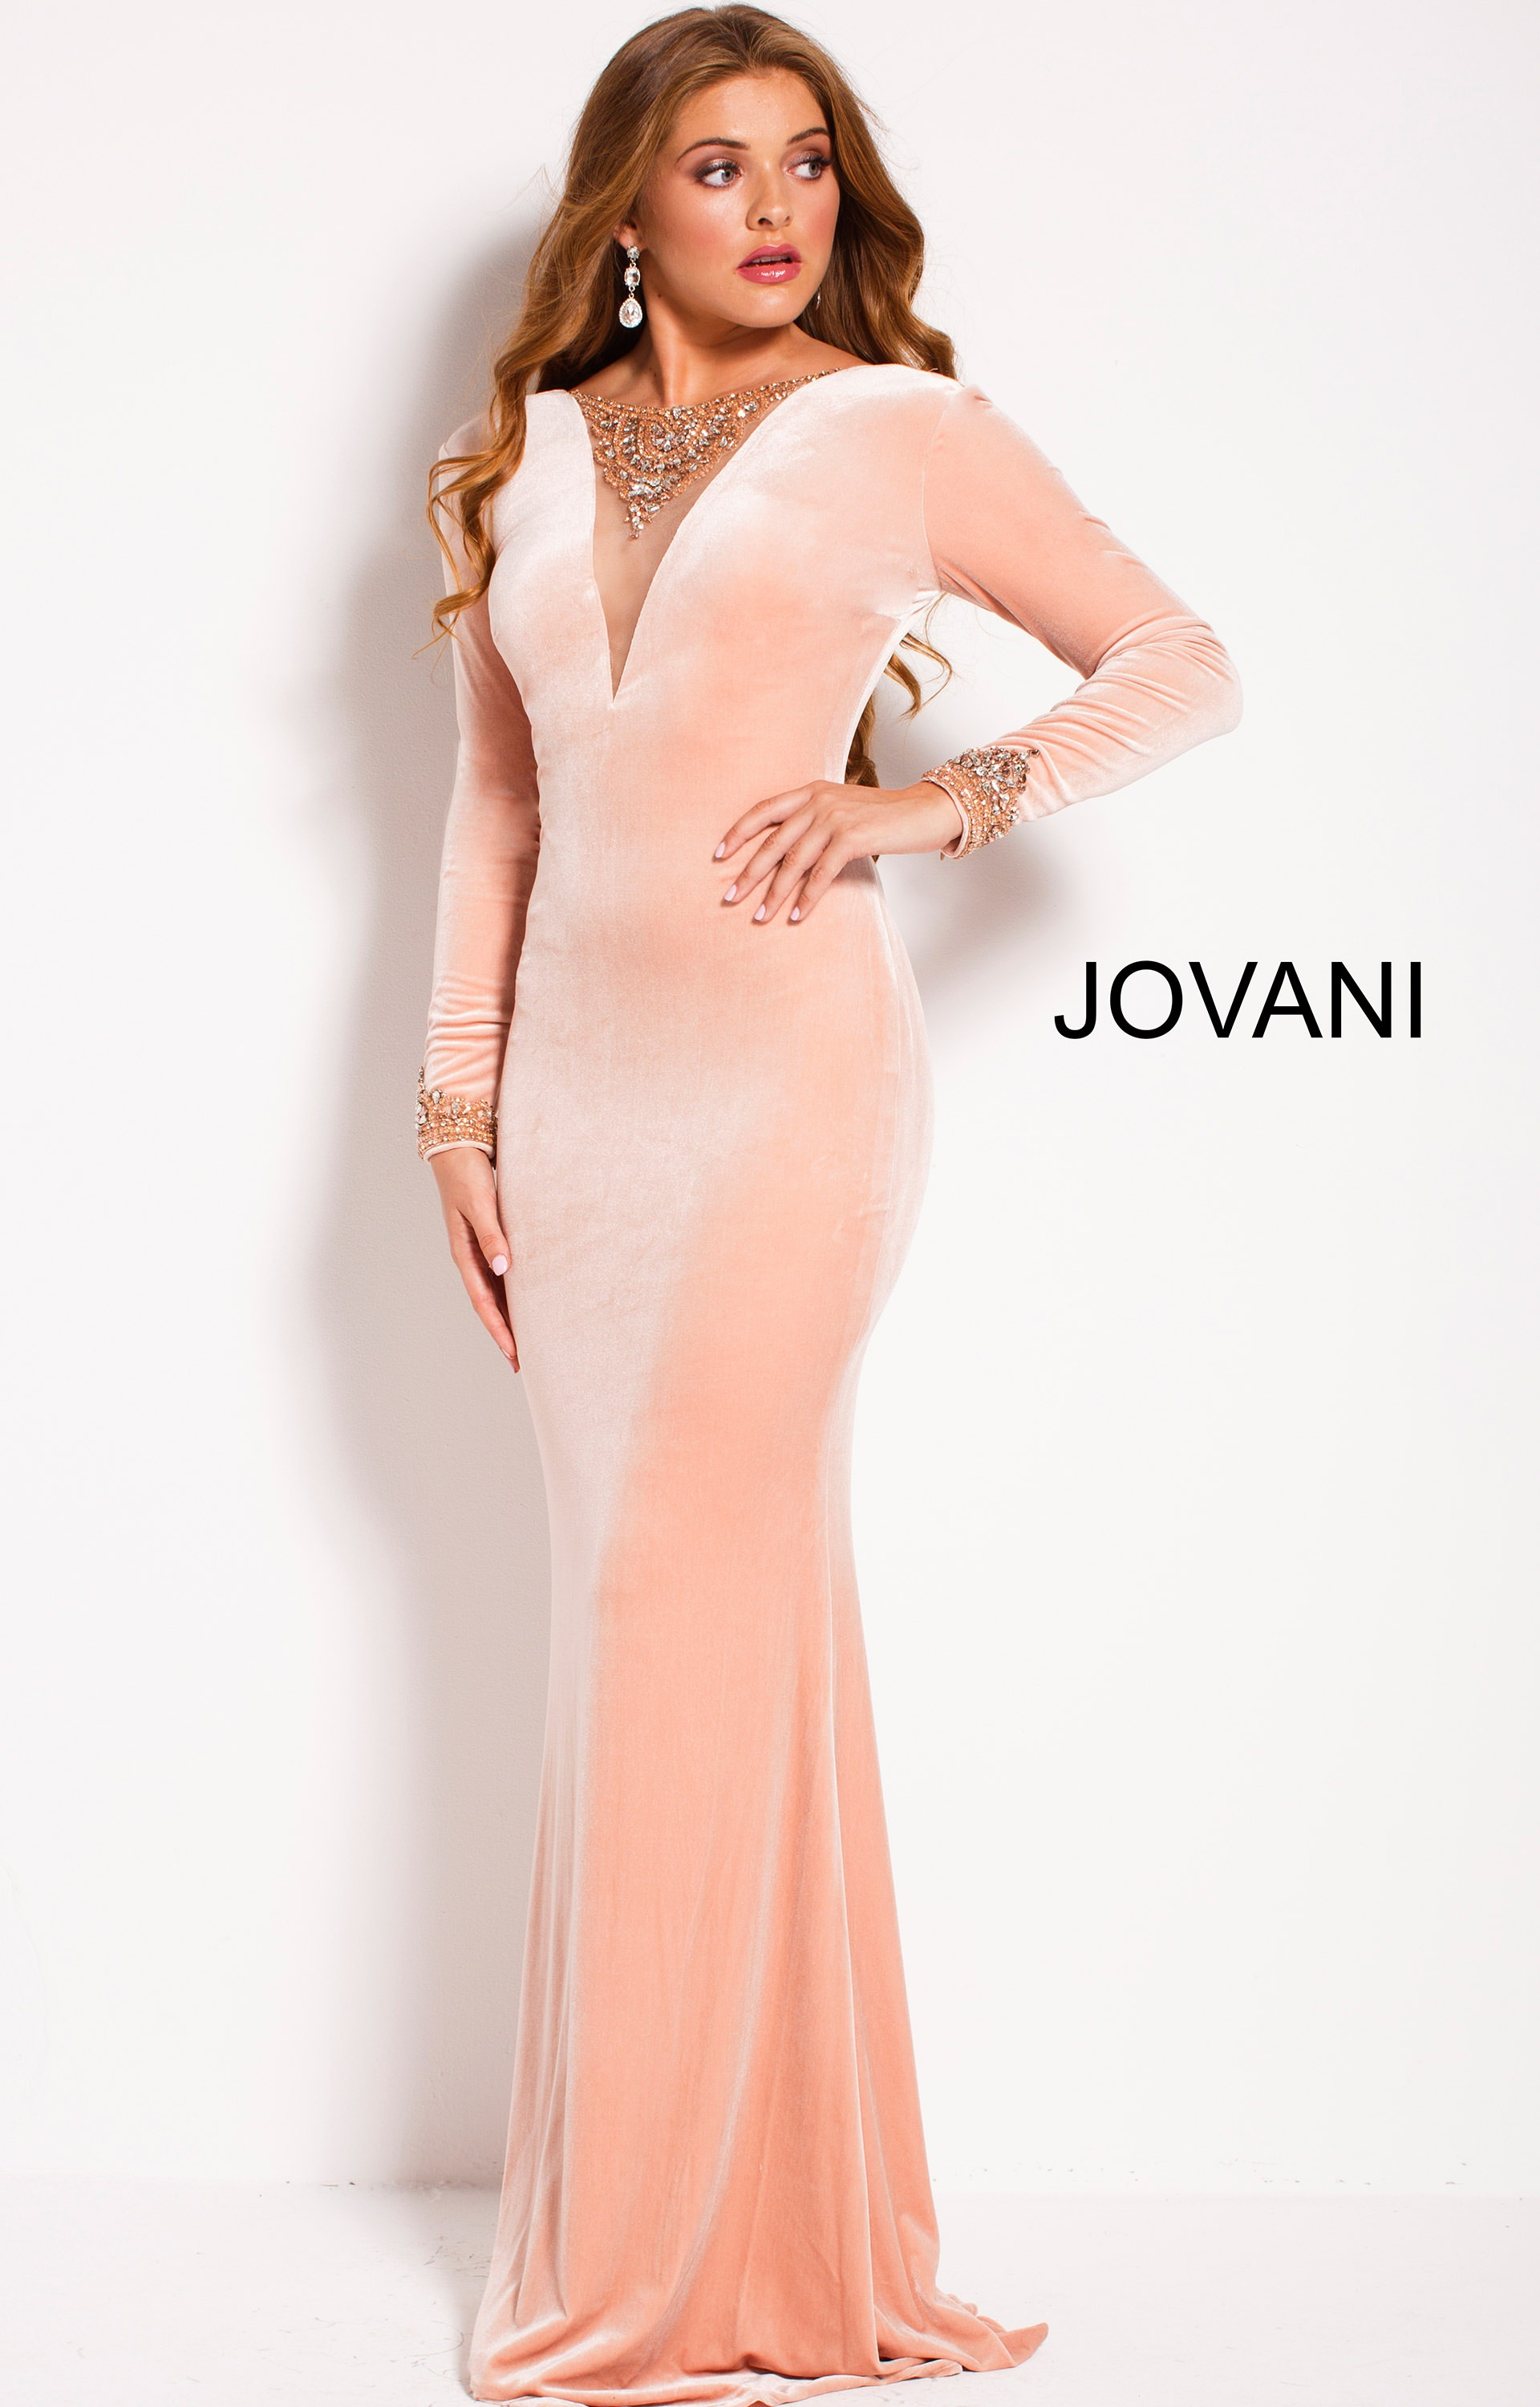 Jovani 4247 Silver nude fitted long beaded high slit